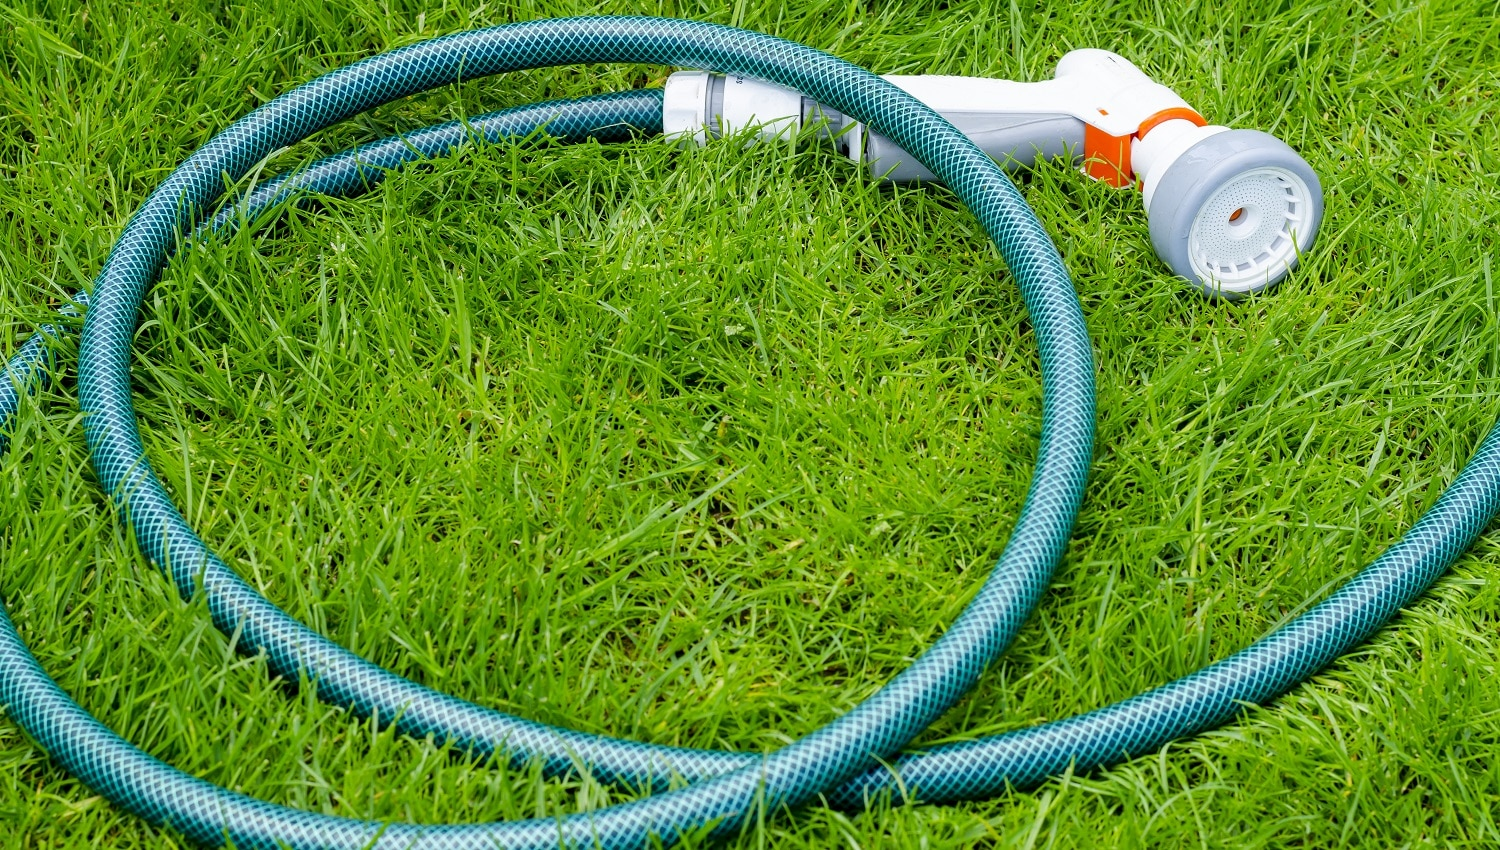 Green hose for watering lies on grass, lawn. Studio Photo